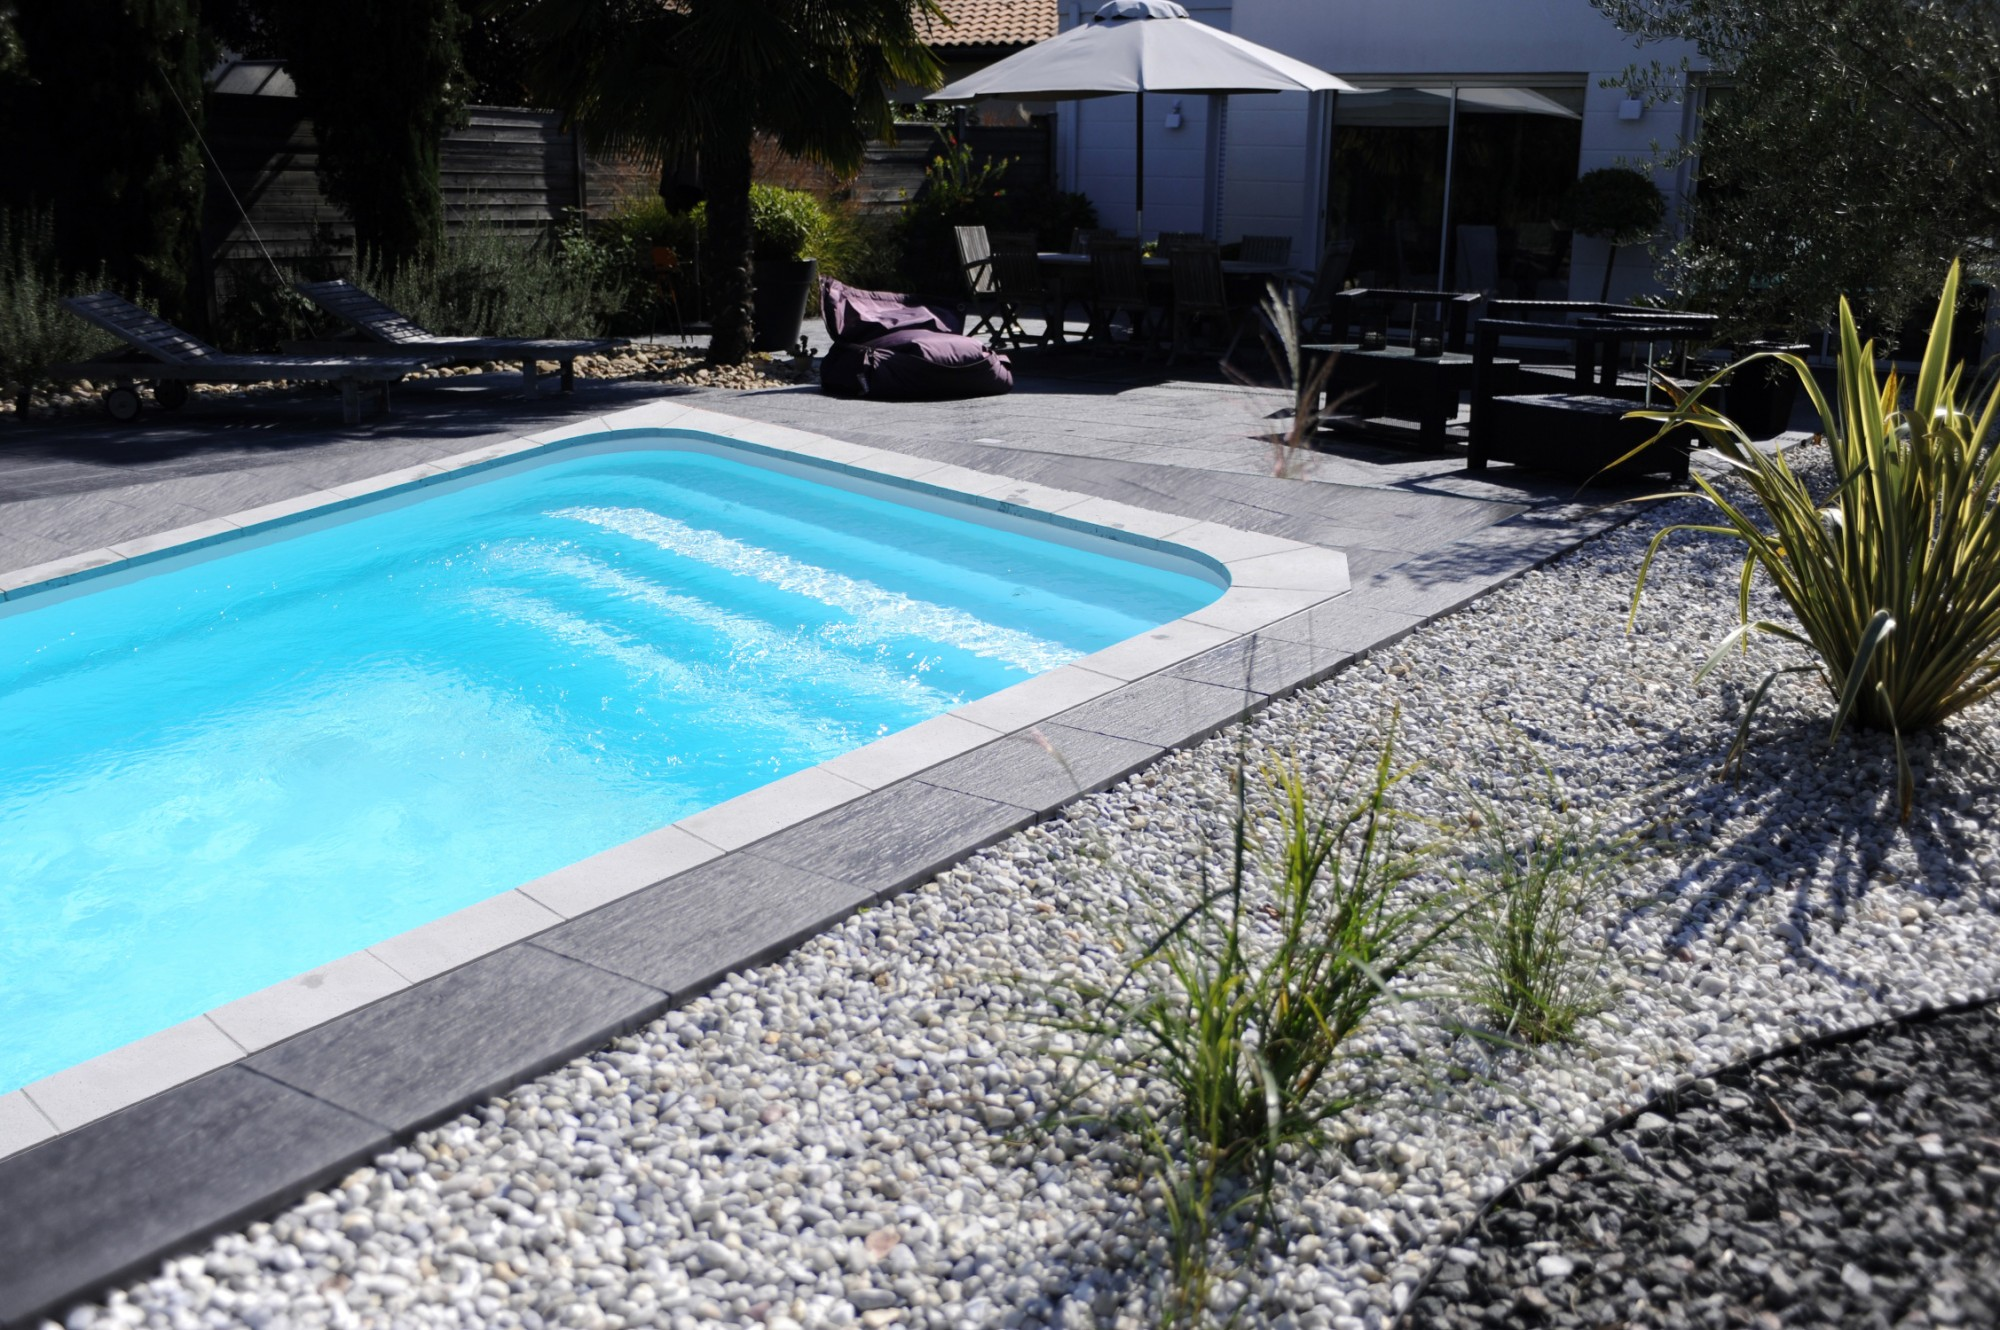 tarif piscine coque enterr e 7x3 pose comprise narbonne installation piscine marseille. Black Bedroom Furniture Sets. Home Design Ideas